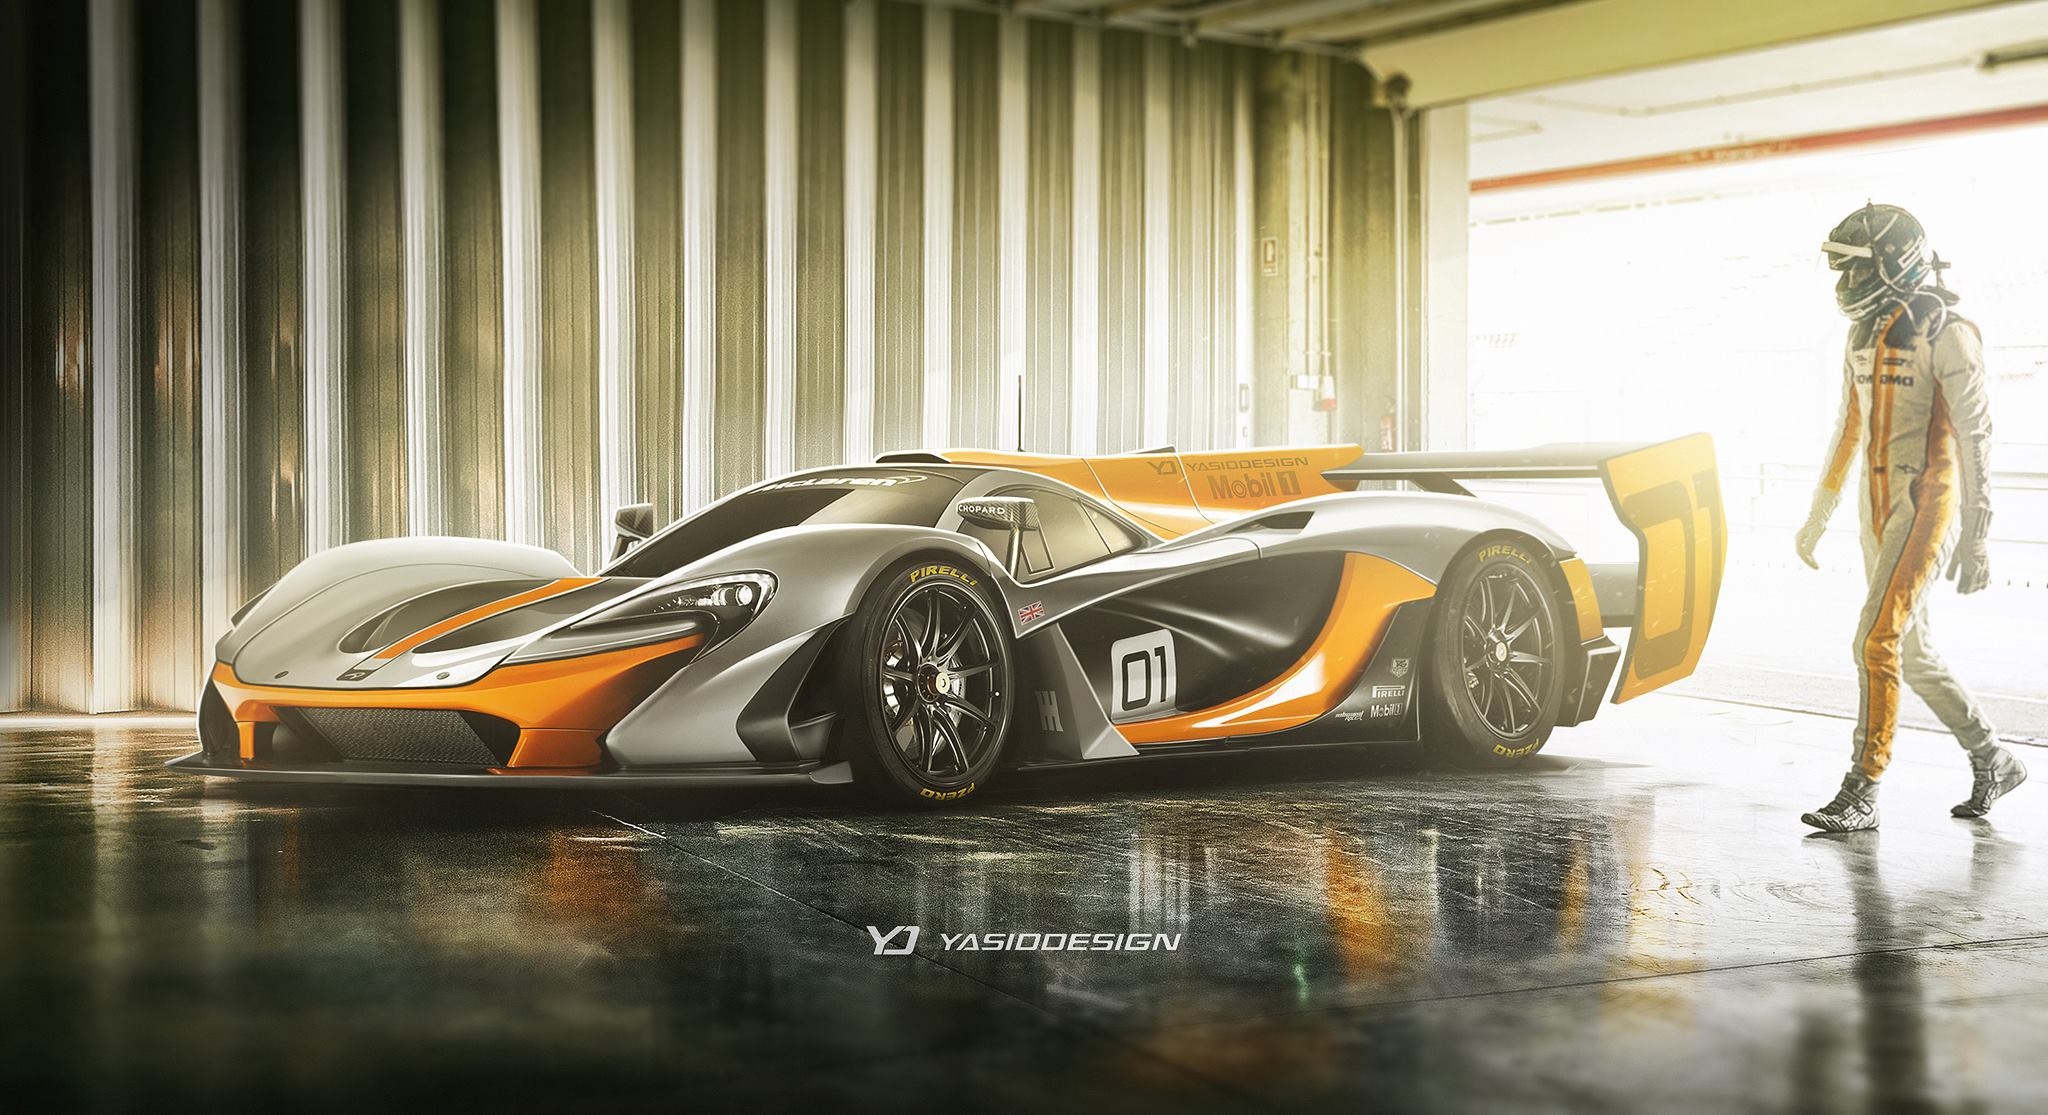 1000 Hp Gtr >> McLaren P1 GTR Becomes LMP1 Le Mans Prototype Racer in Mind-Blowing Rendering - autoevolution